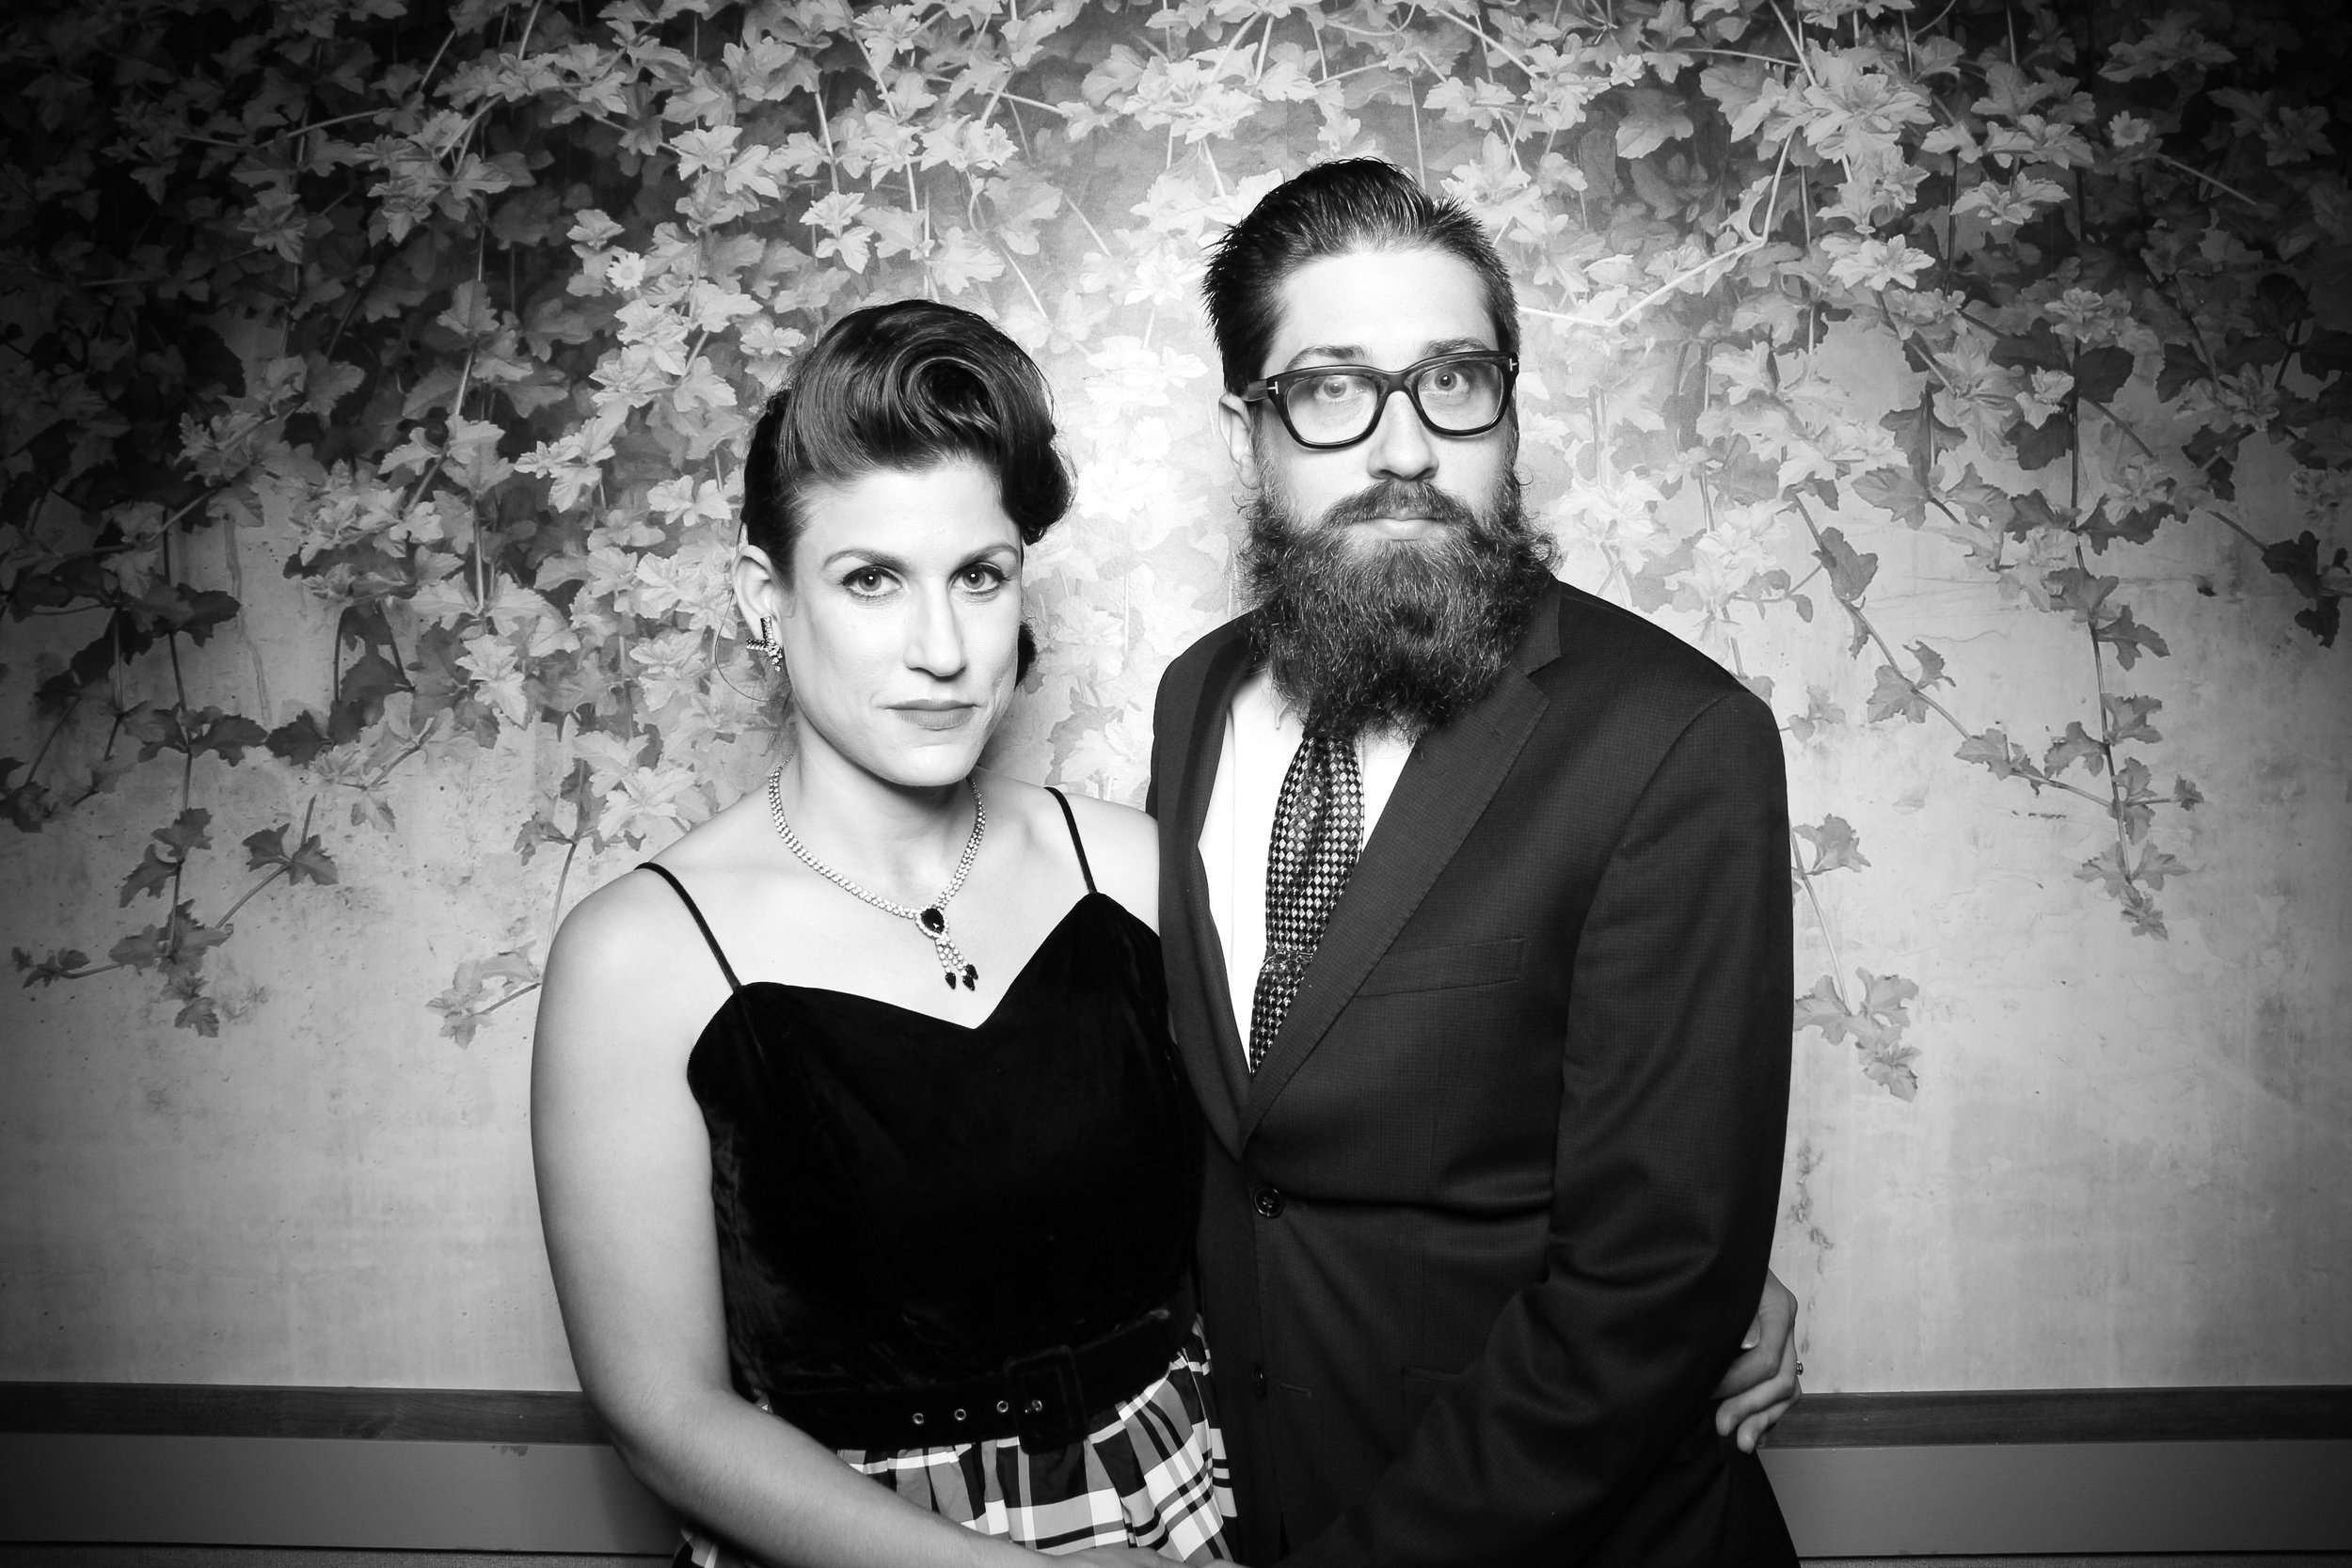 Randall_Oaks_Country_Club_Wedding_West_Dundee_Photo_Booth_08.jpg